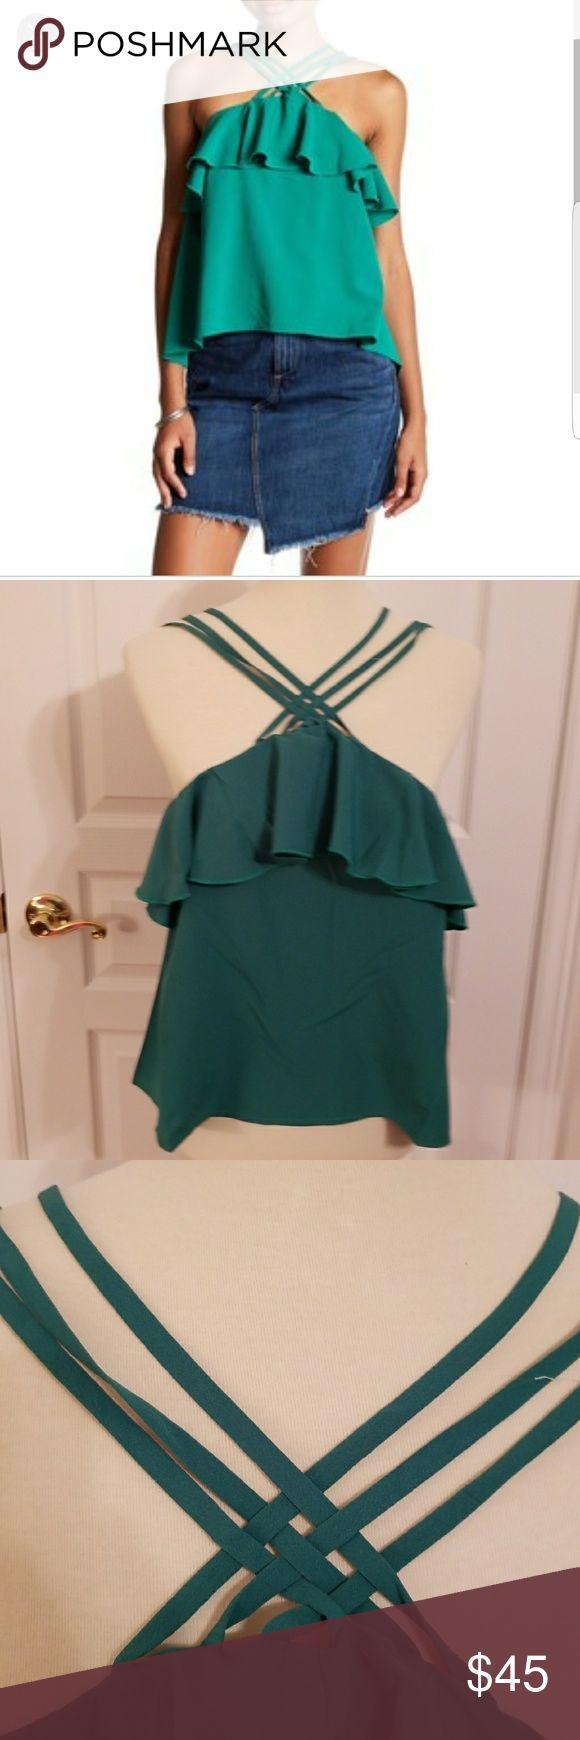 "Romeo & Juliet Couture green Strappy top sz L NWT Super cute green Strappy ruffle top by Romeo & Juliet Couture. Crisscross straps at front and ruffle detail at bustline. Elastic at back bustline for stretch. NWT. Jewel tone emerald color. Approx 22"" shoulder to hem bust approx 37"" (unstretched) Romeo & Juliet Couture Tops"